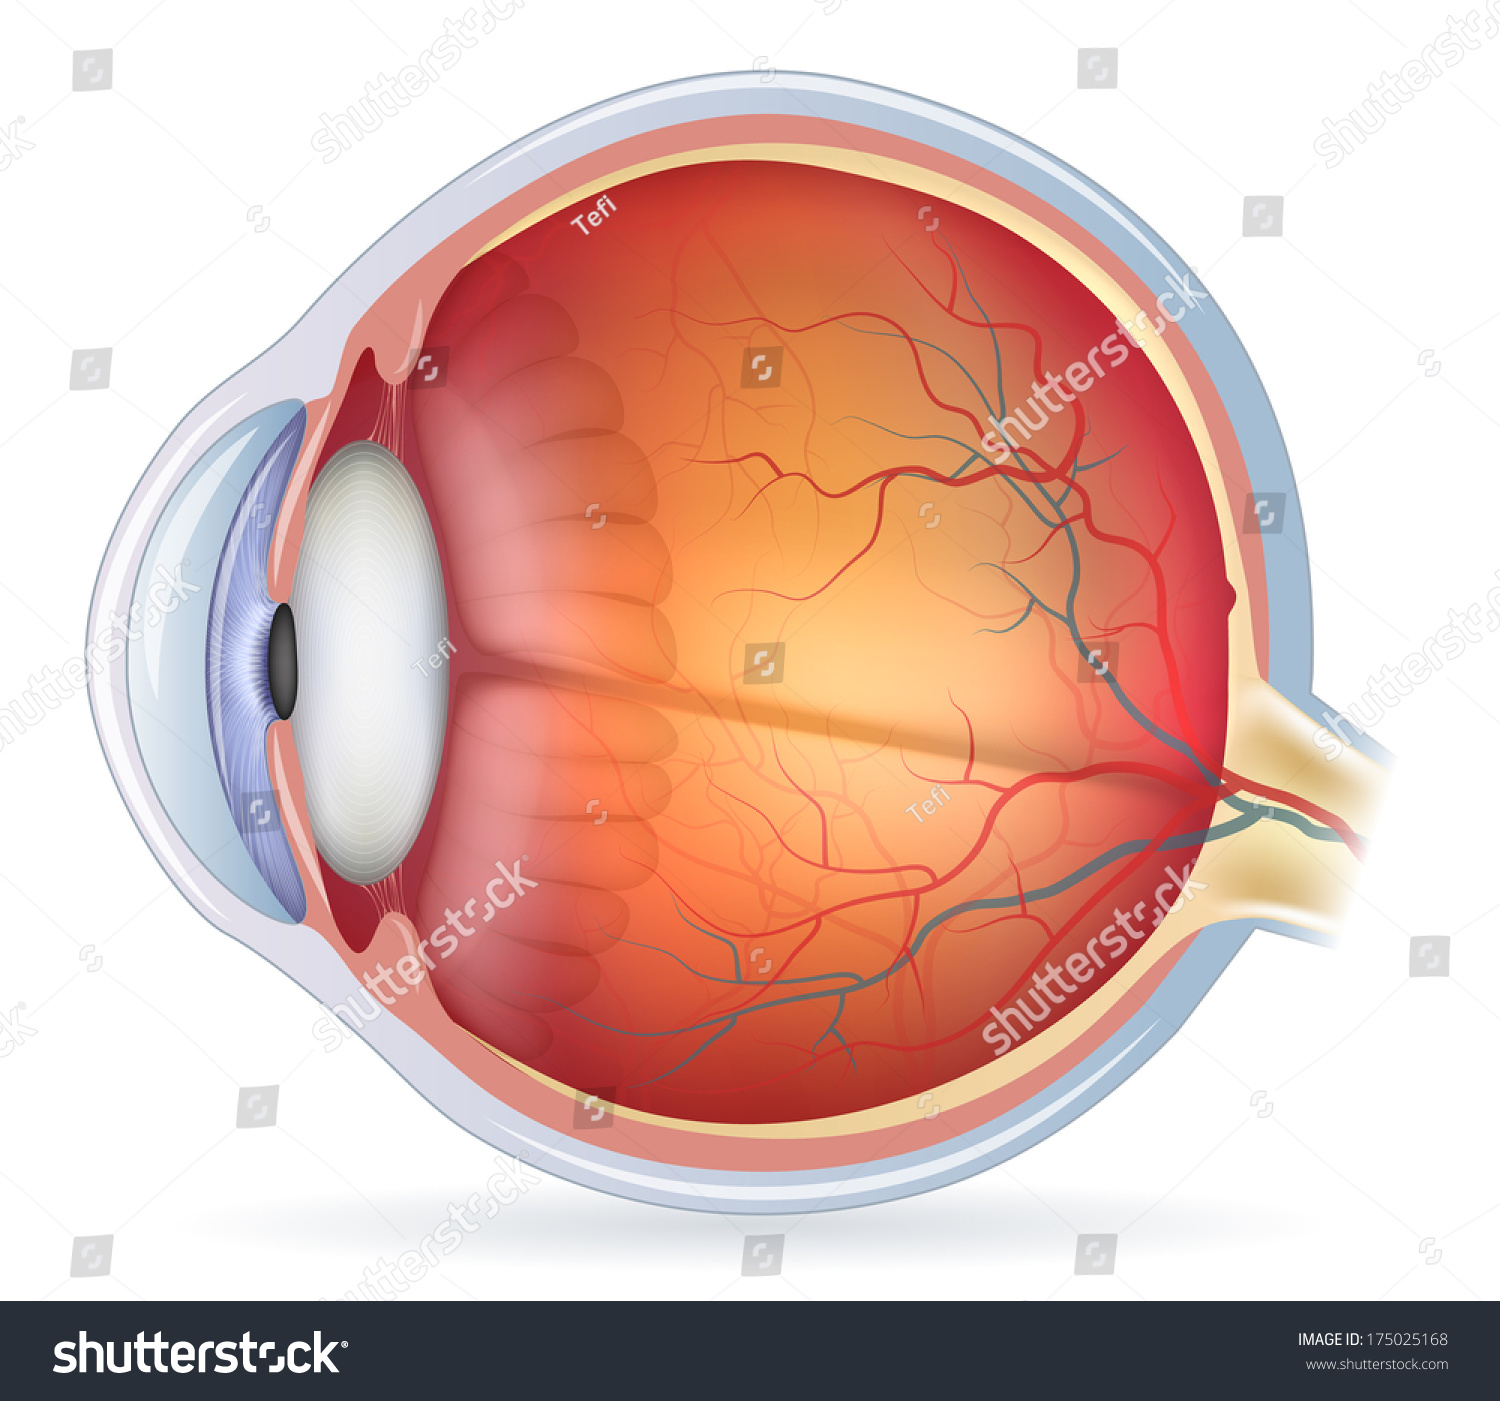 Human Eye Anatomy Diagram Medical Illustration Stock Vector (Royalty ...